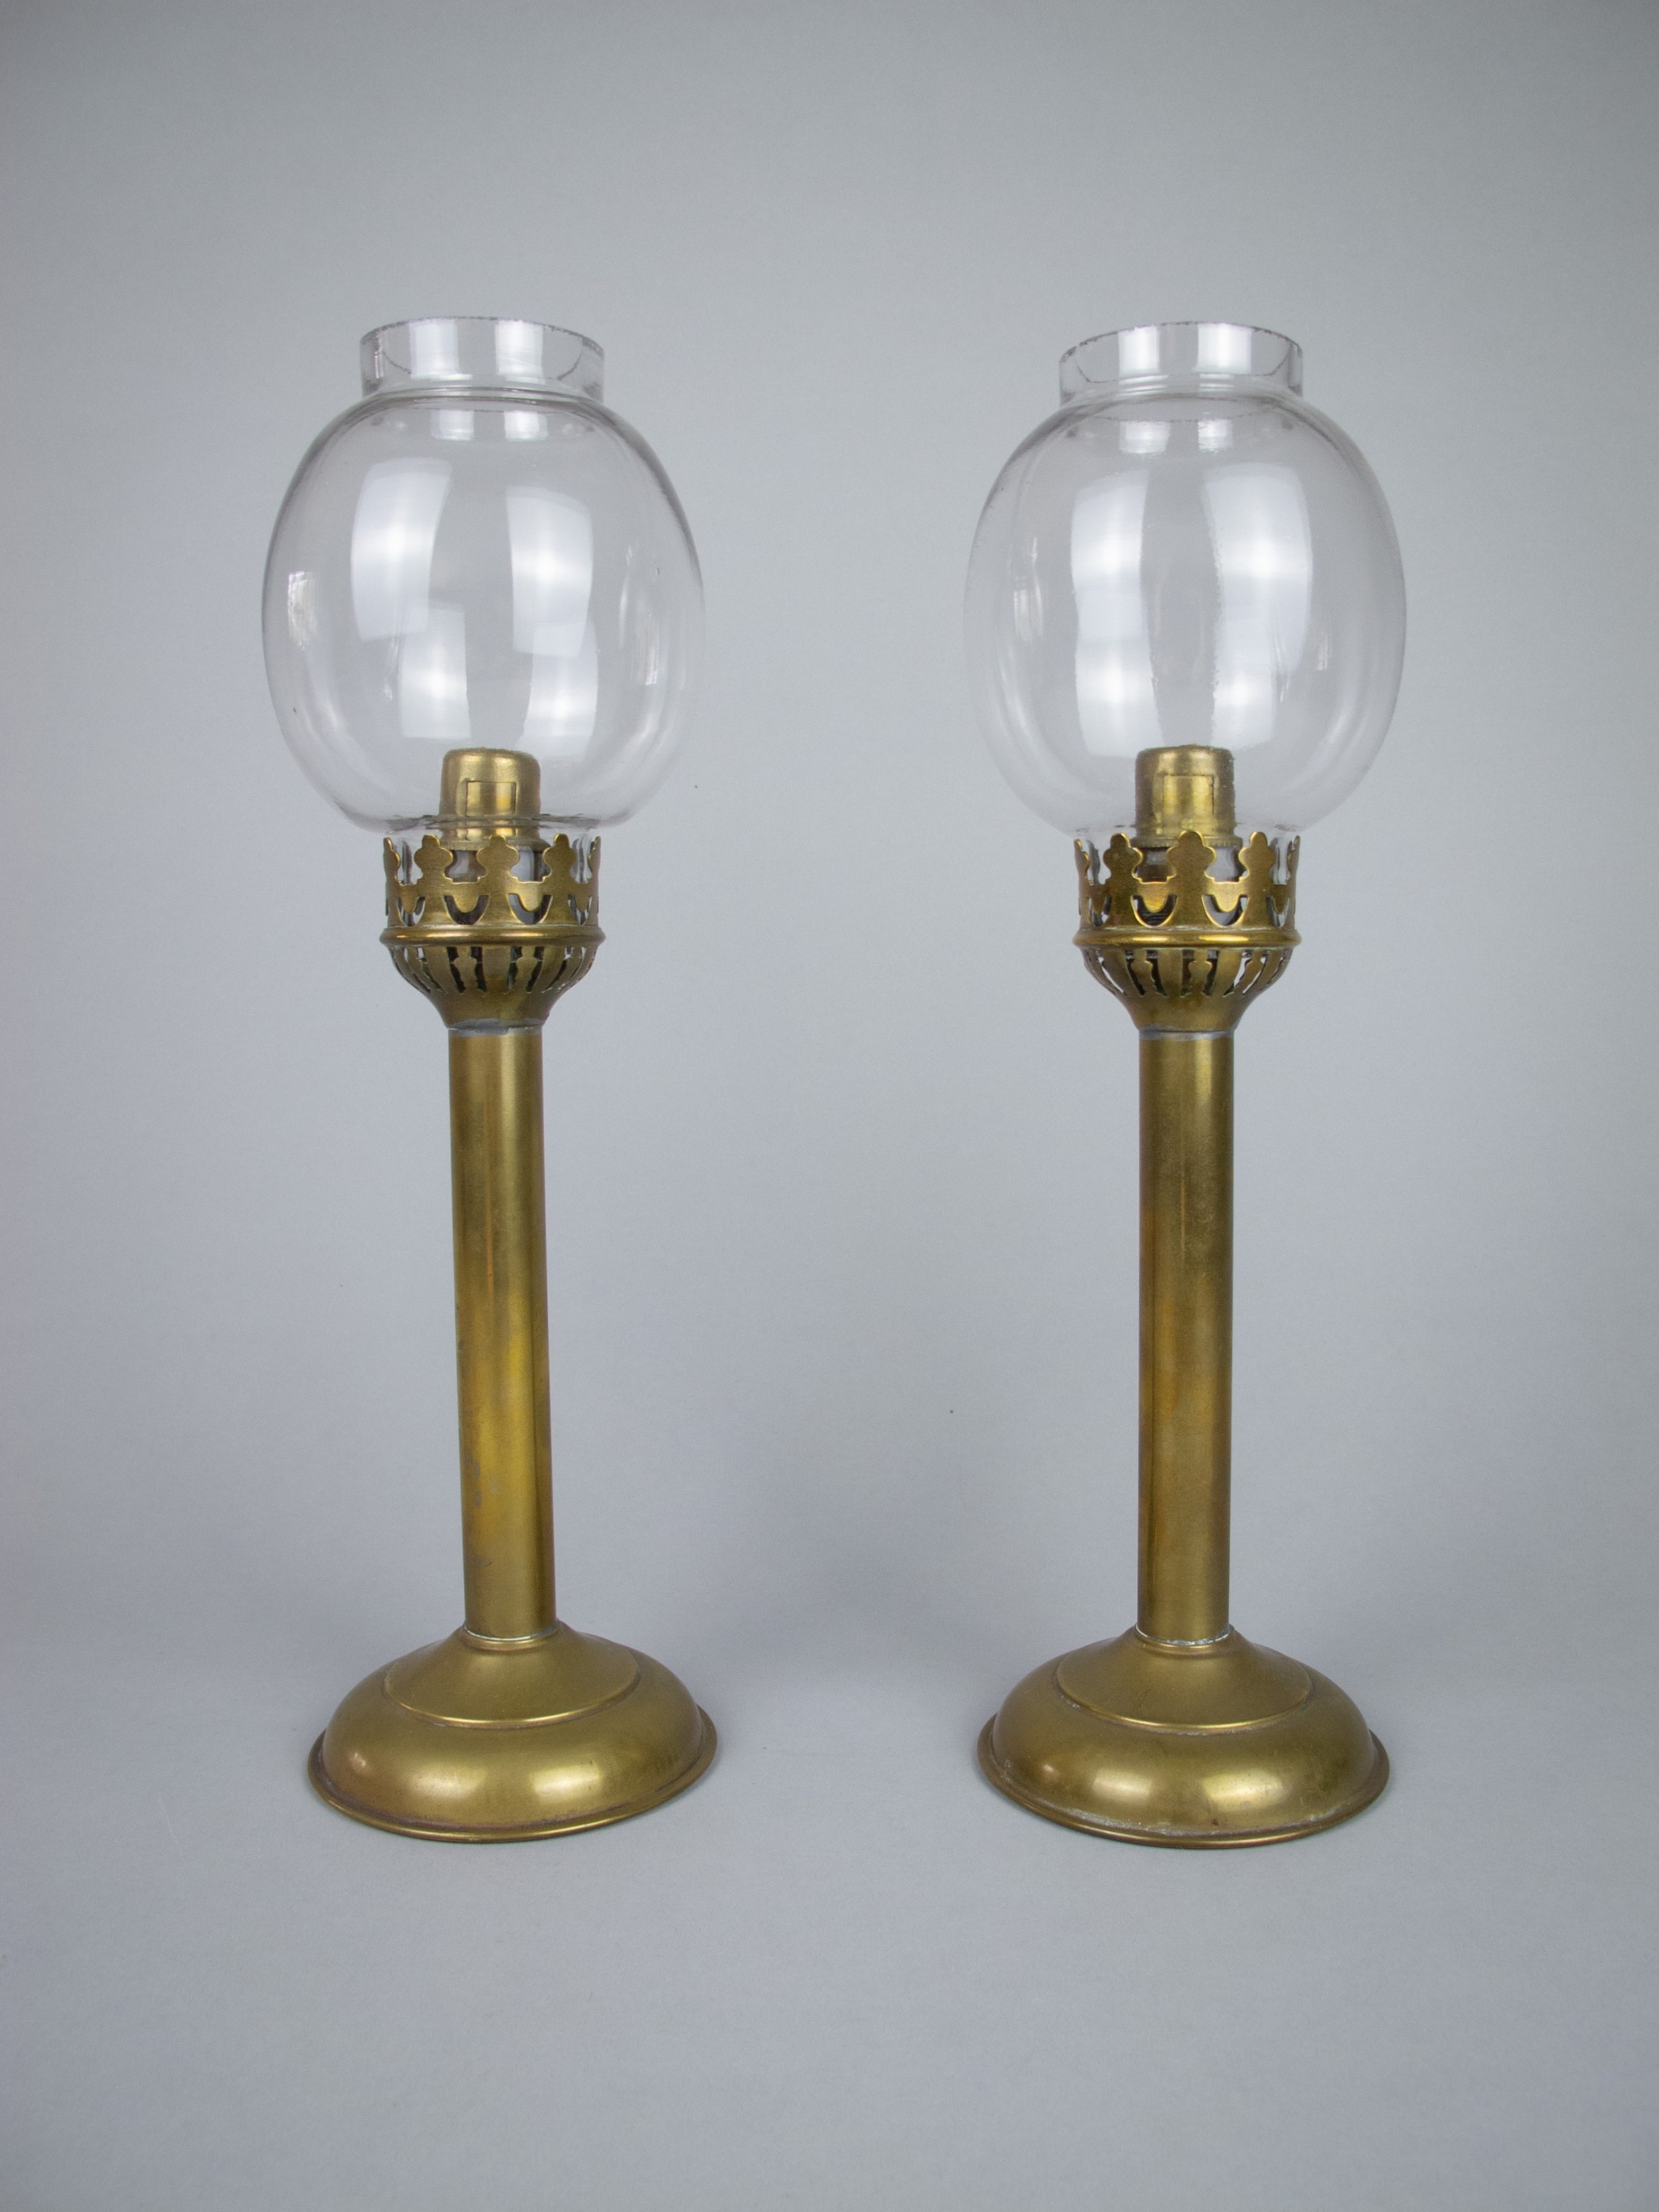 pair of 19th century french brass gothic candlesticks with glass shades